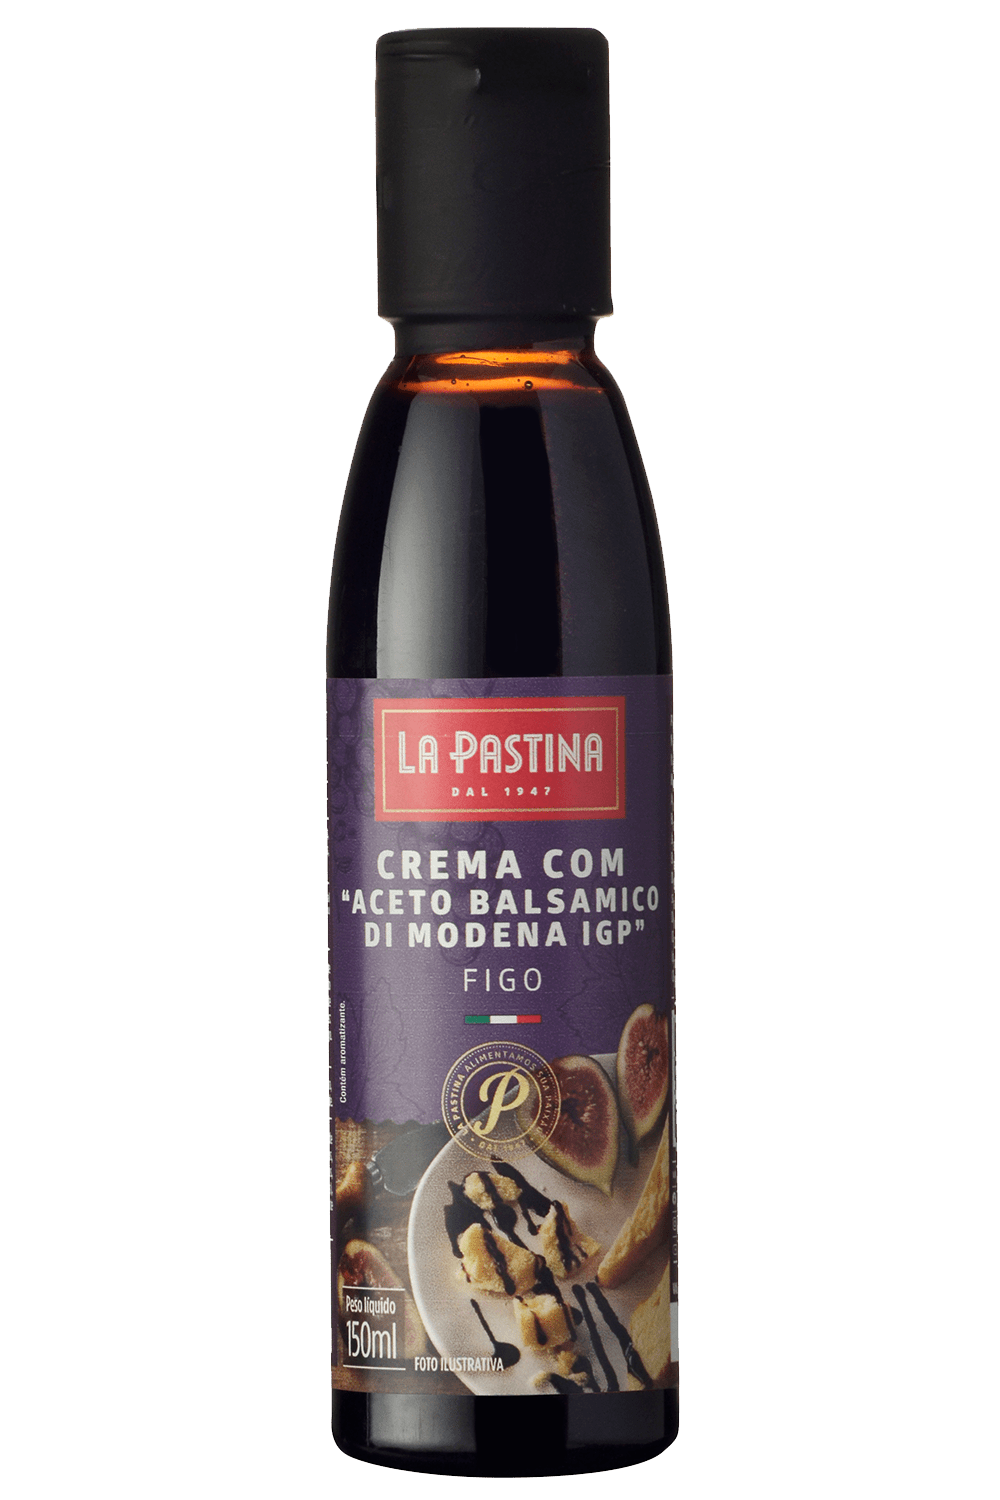 024380-CREMA-BALSAMICO-IT-LA-PASTINA-FIGO--150-ml